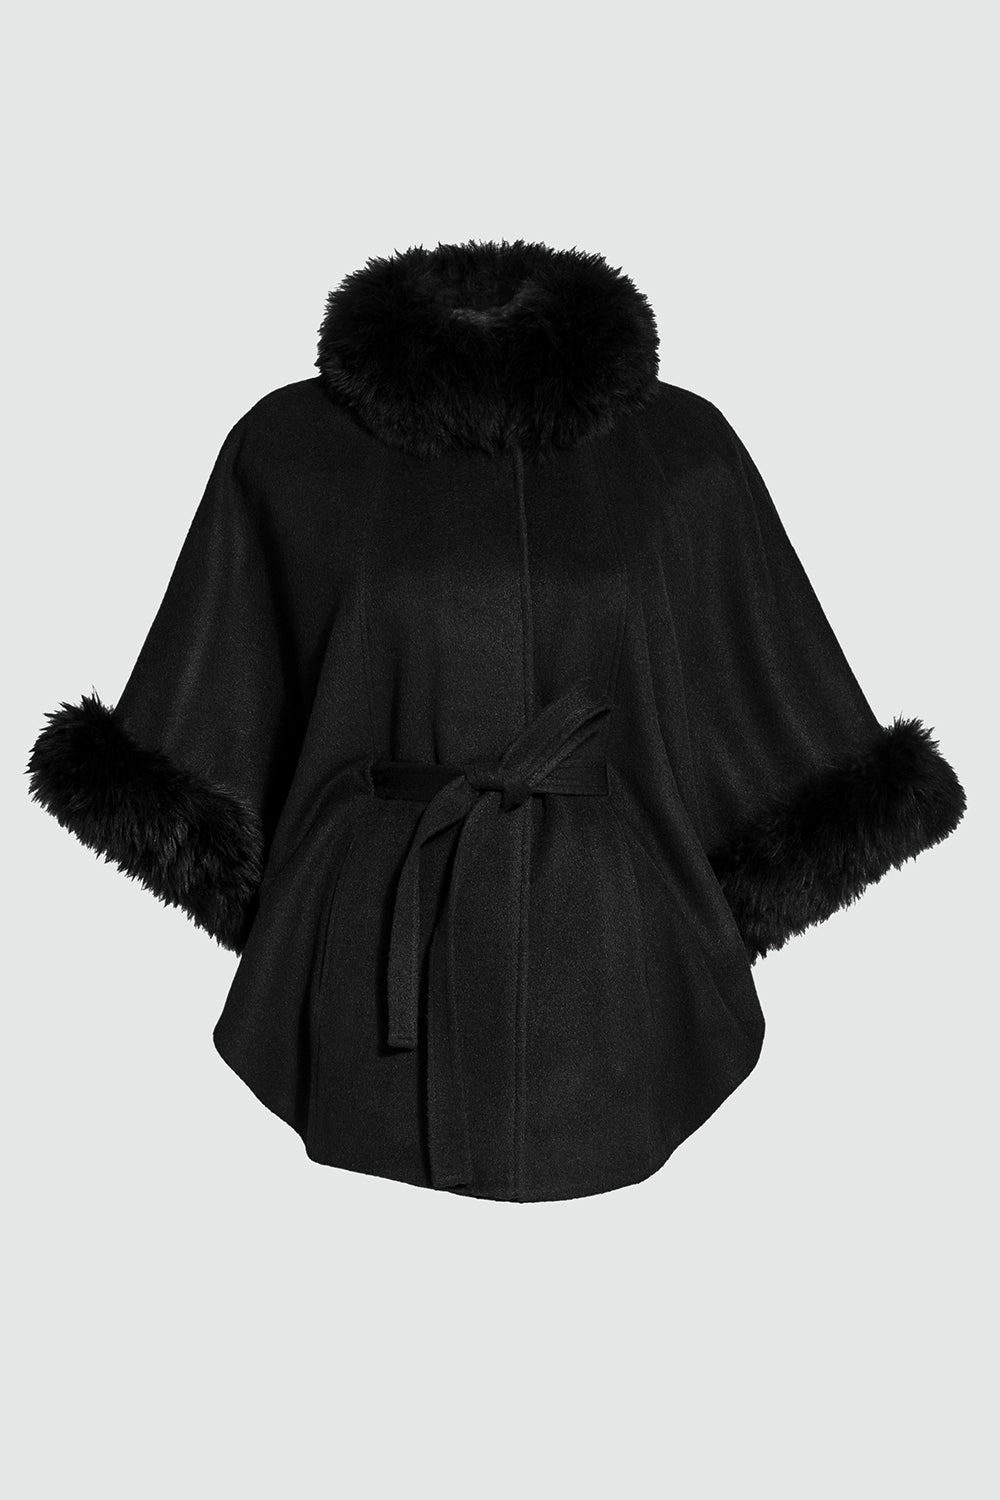 Sentaler Cape with Fur Collar and Cuffs featured in Baby Alpaca and available in Black. Seen off model.